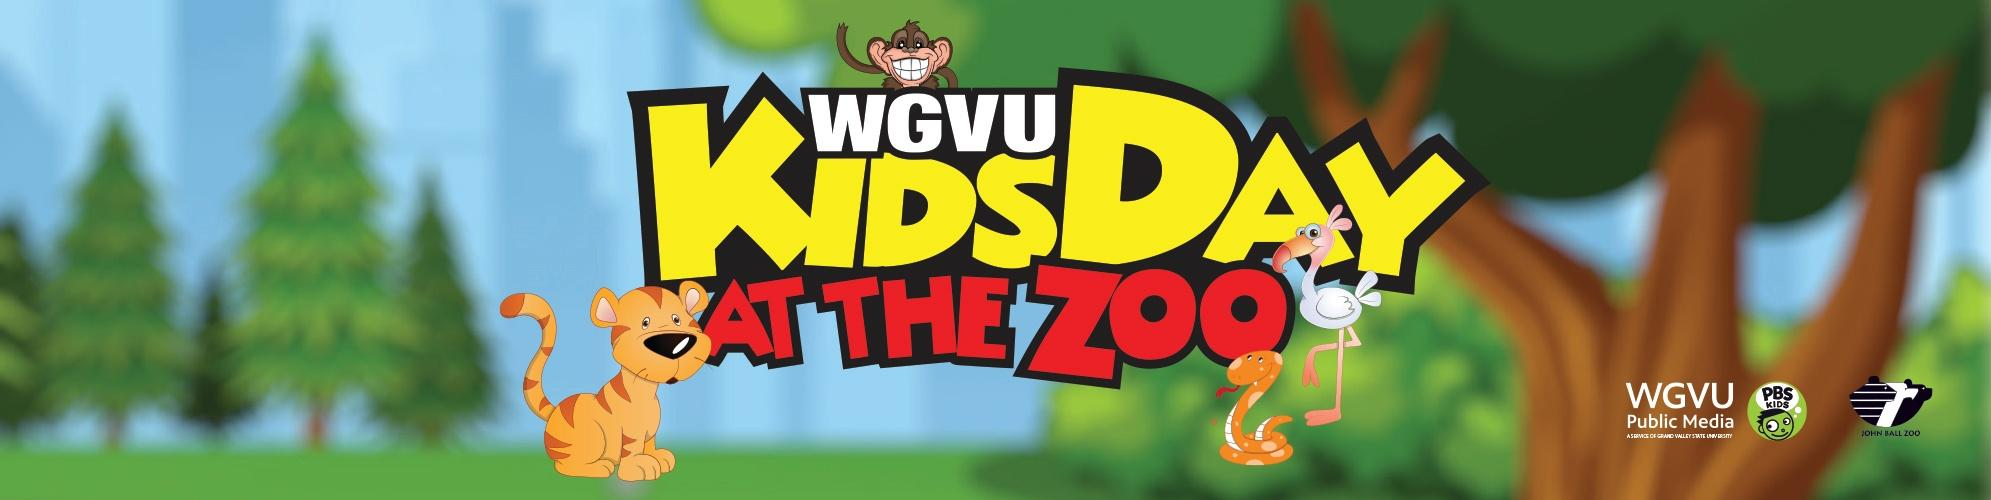 Kidsday at the zoo